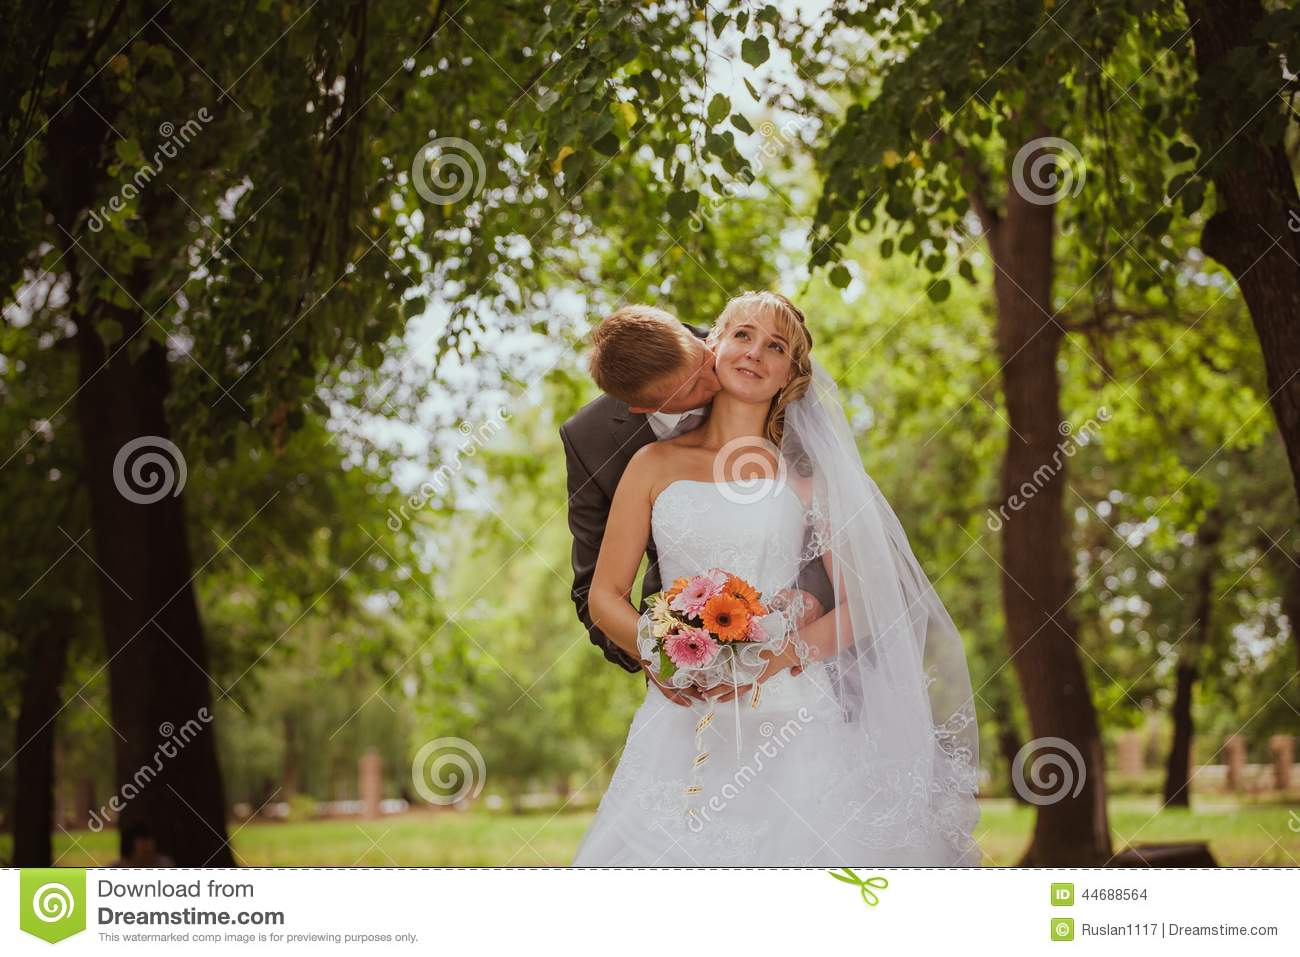 Bride and groom in a park kissing.couple newlyweds bride and groom at a wedding in nature green forest are kissing photo